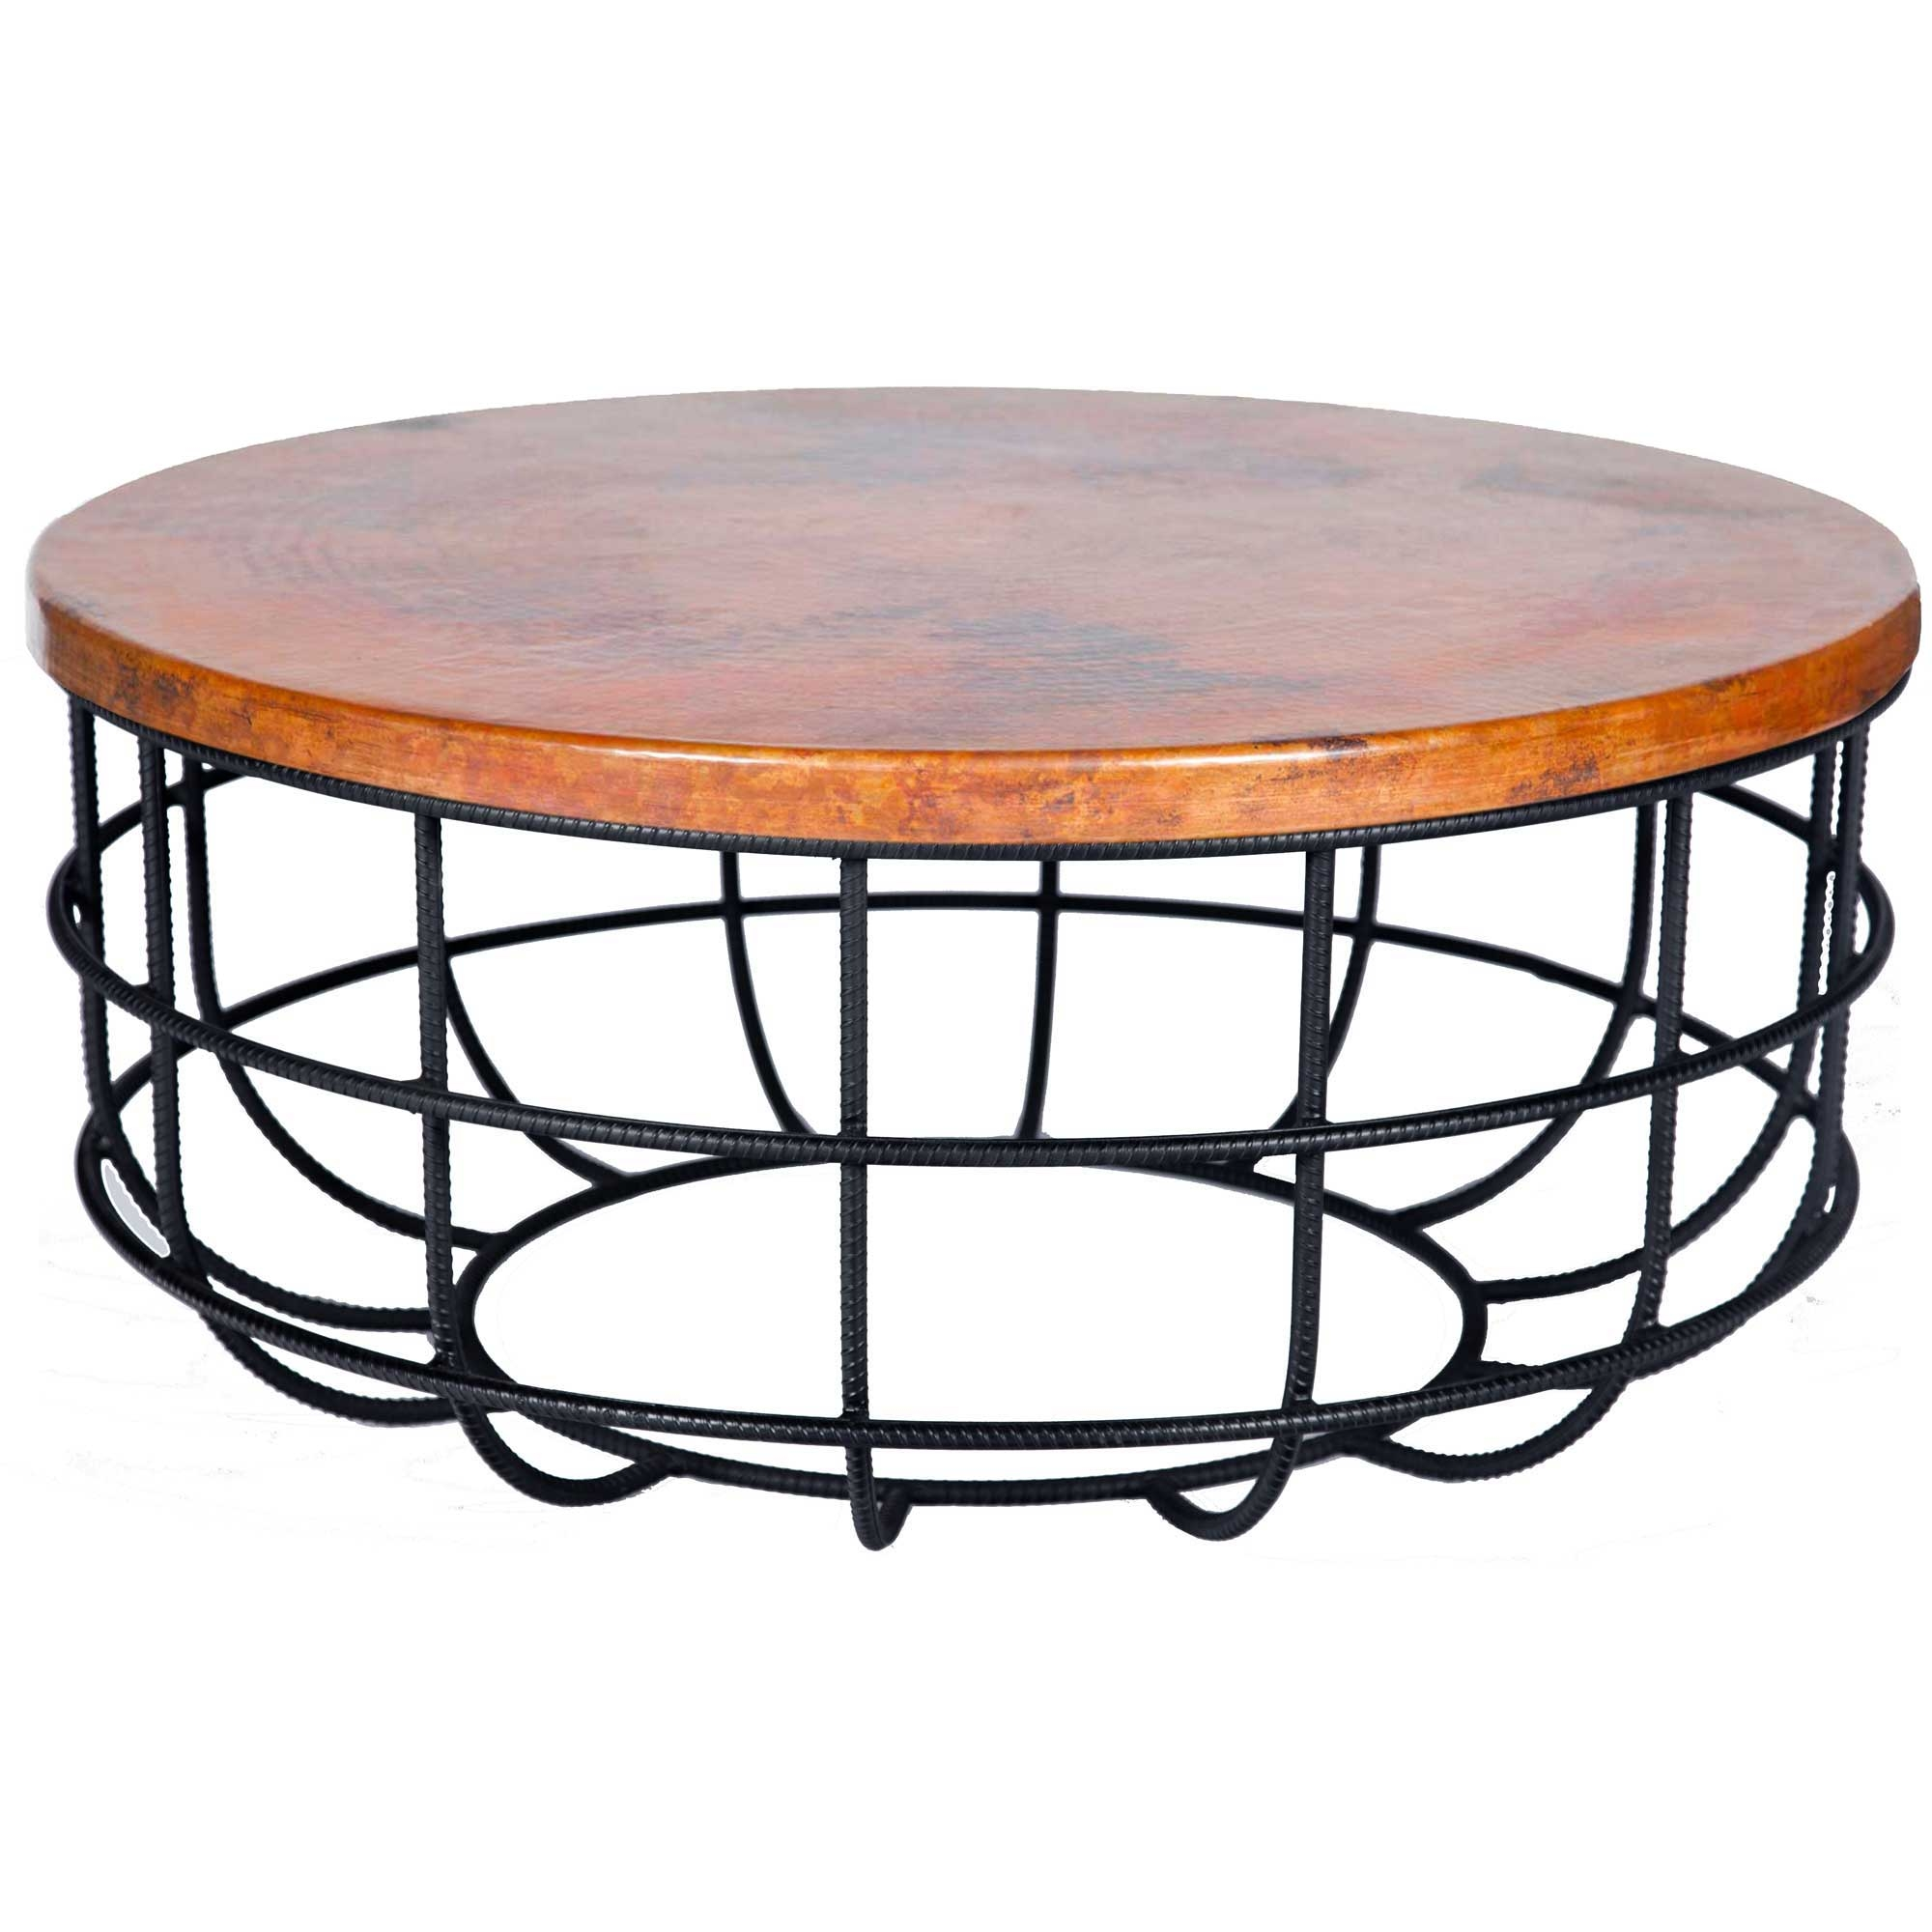 Axel Iron Coffee Table With Round Hammered Copper Top